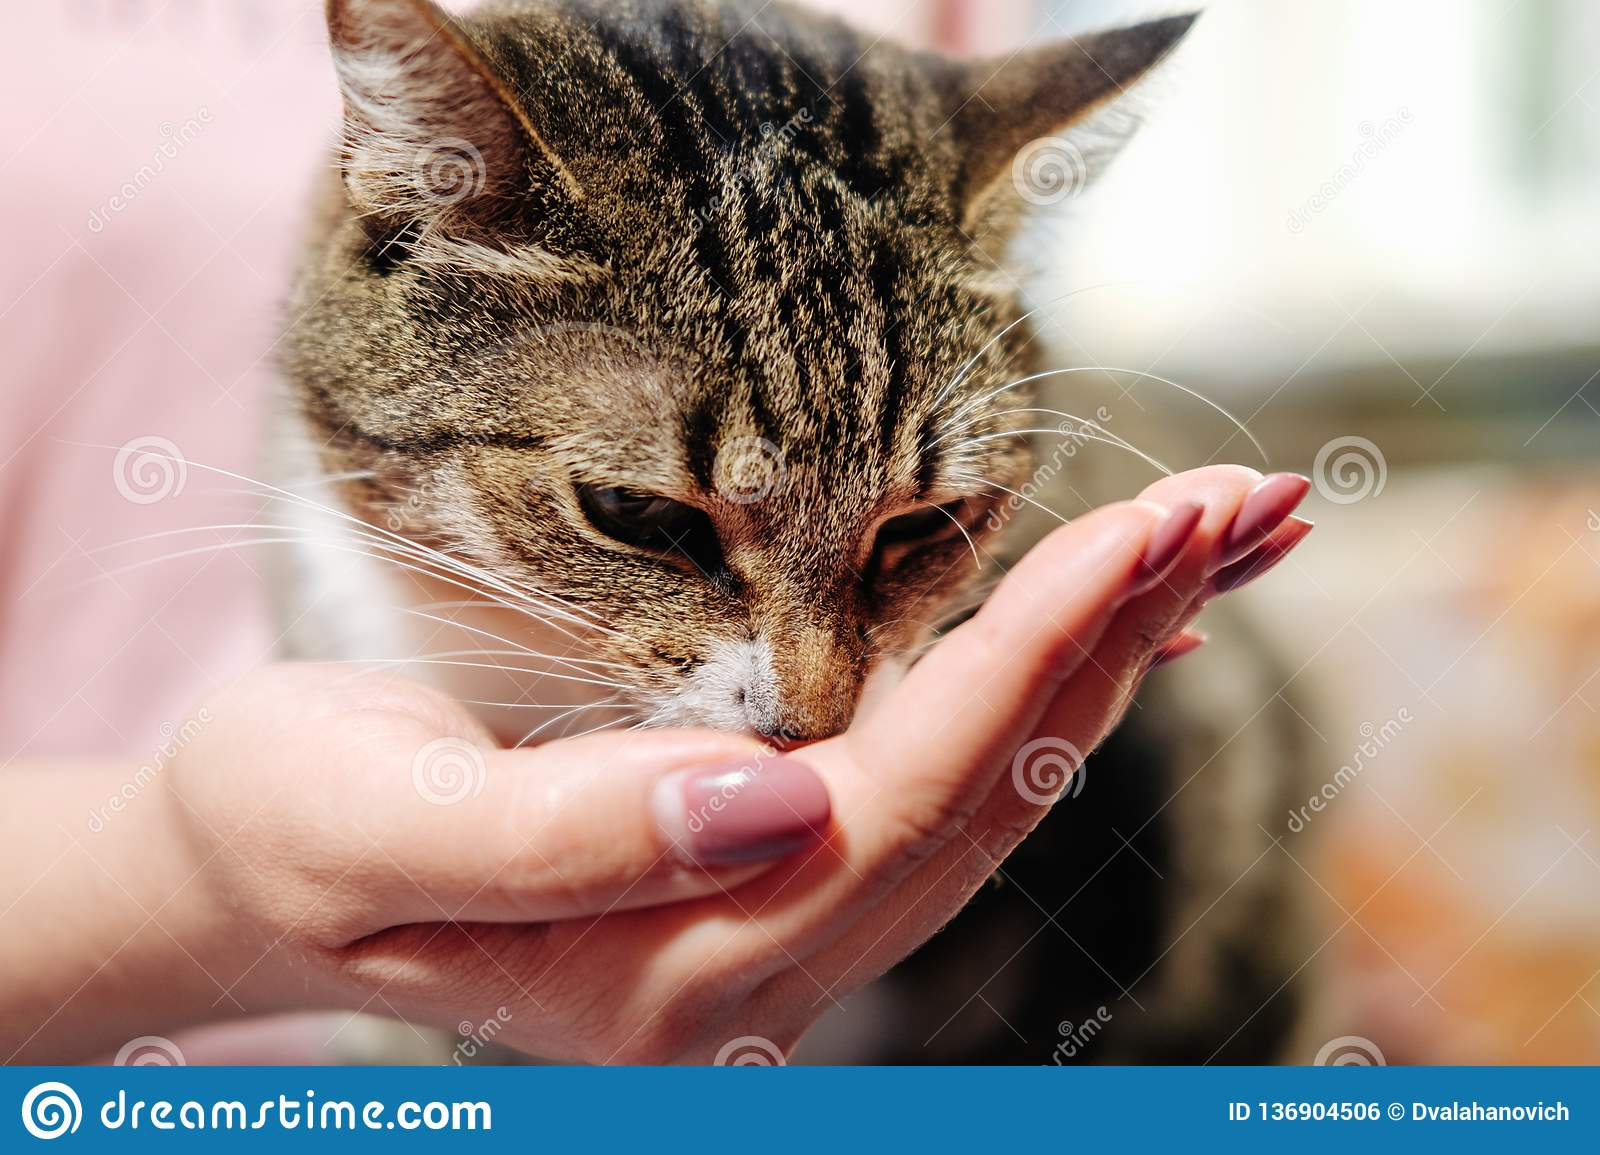 Cat eats from hand of woman